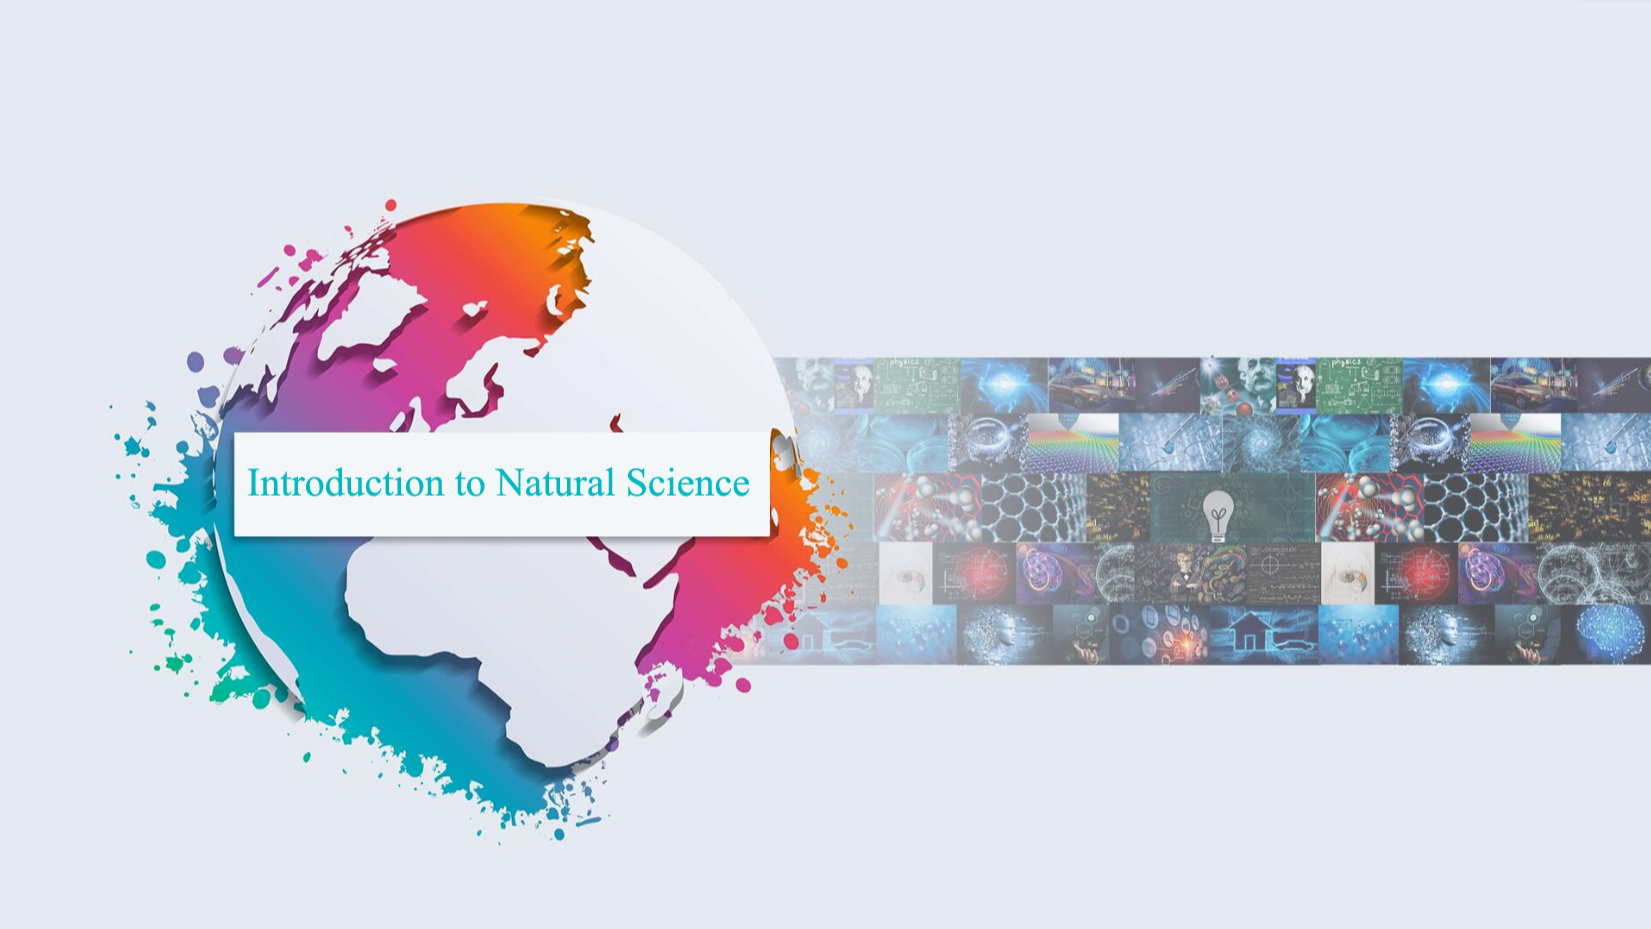 Introduction to Natural Science